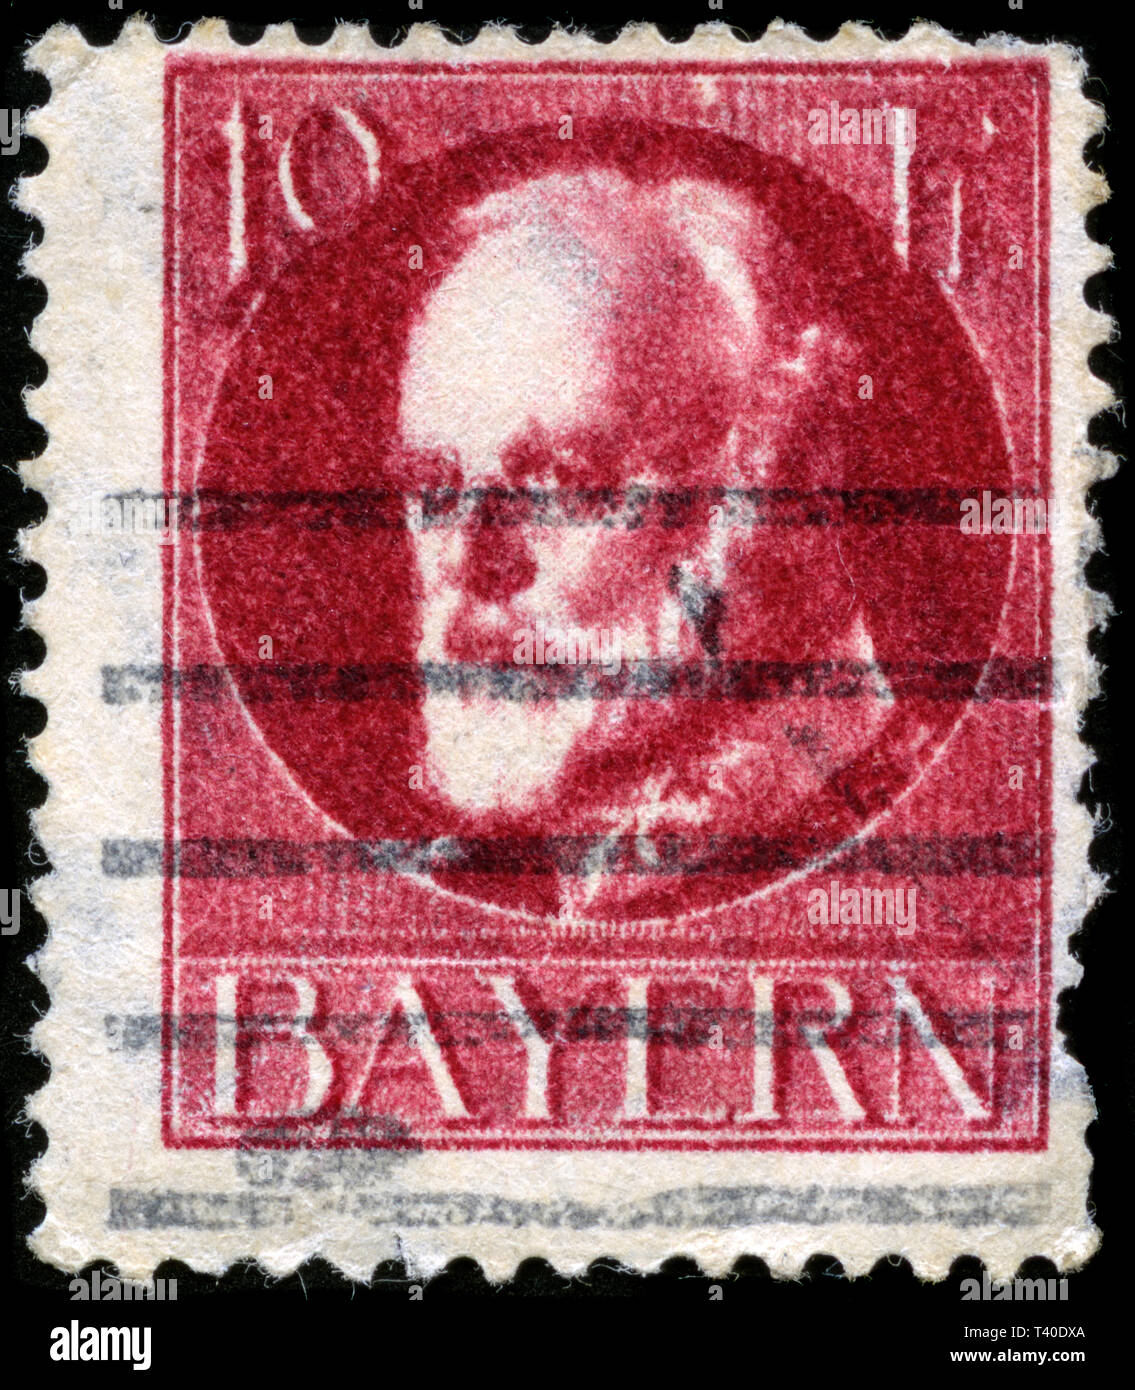 Postage stamp from the German States in the Bavaria series issued in 1914 - Stock Image